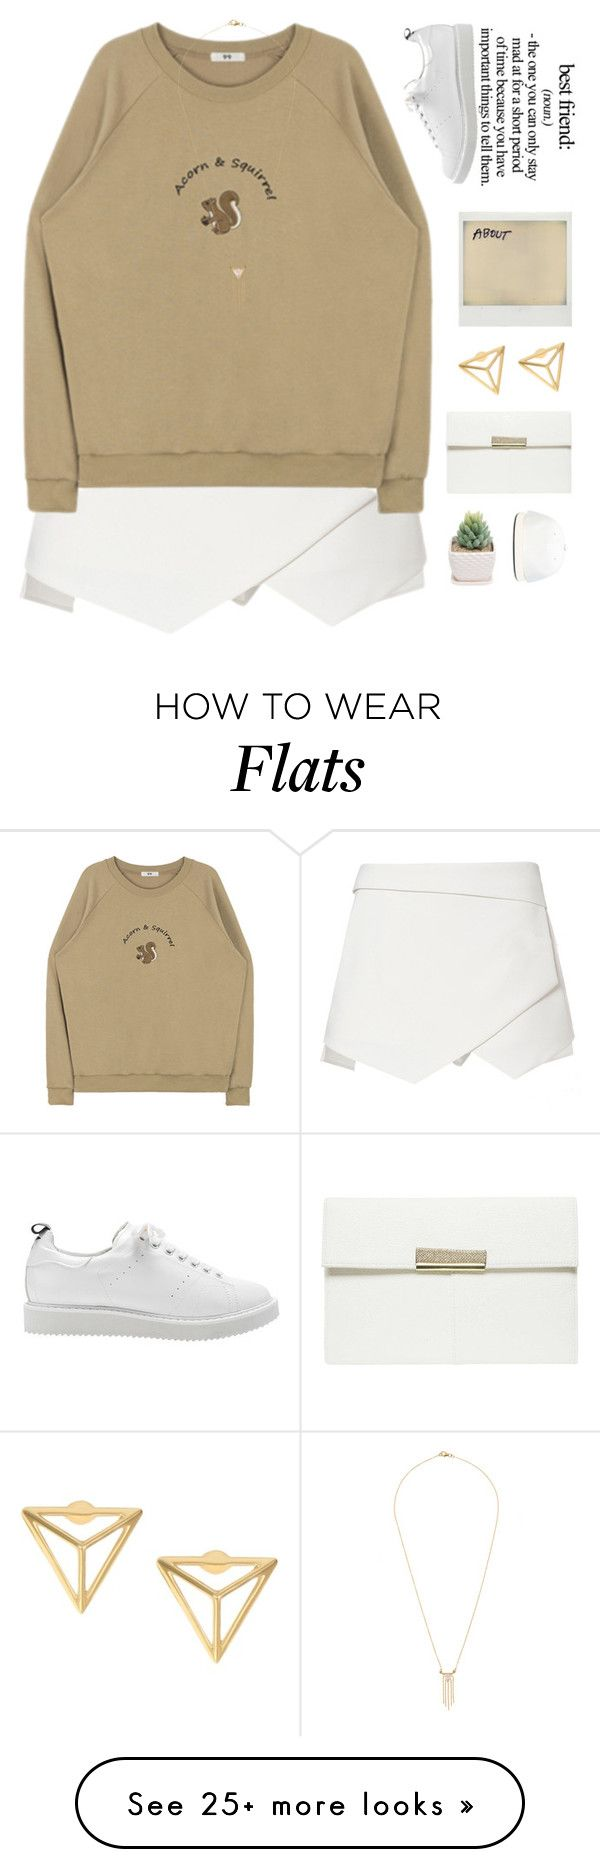 """Remind Me"" by xxpai on Polyvore featuring Polaroid, Katie Diamond, Dorothy Perkins and DRKSHDW"